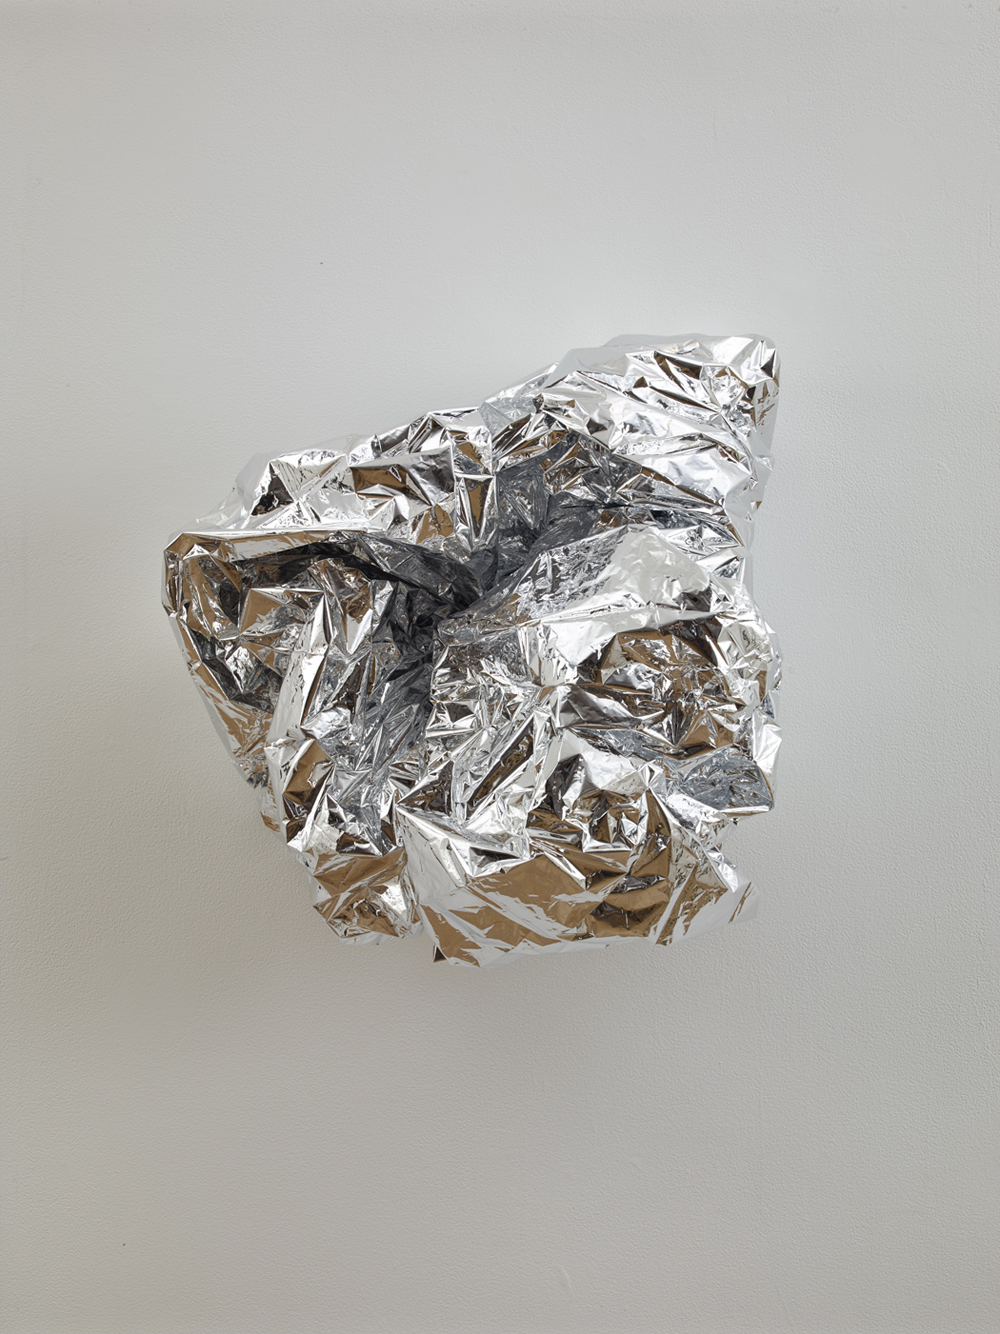 TONY FEHER Konder Massif, 2013 Mylar rescue blanket 21 x 19 x 13 inches